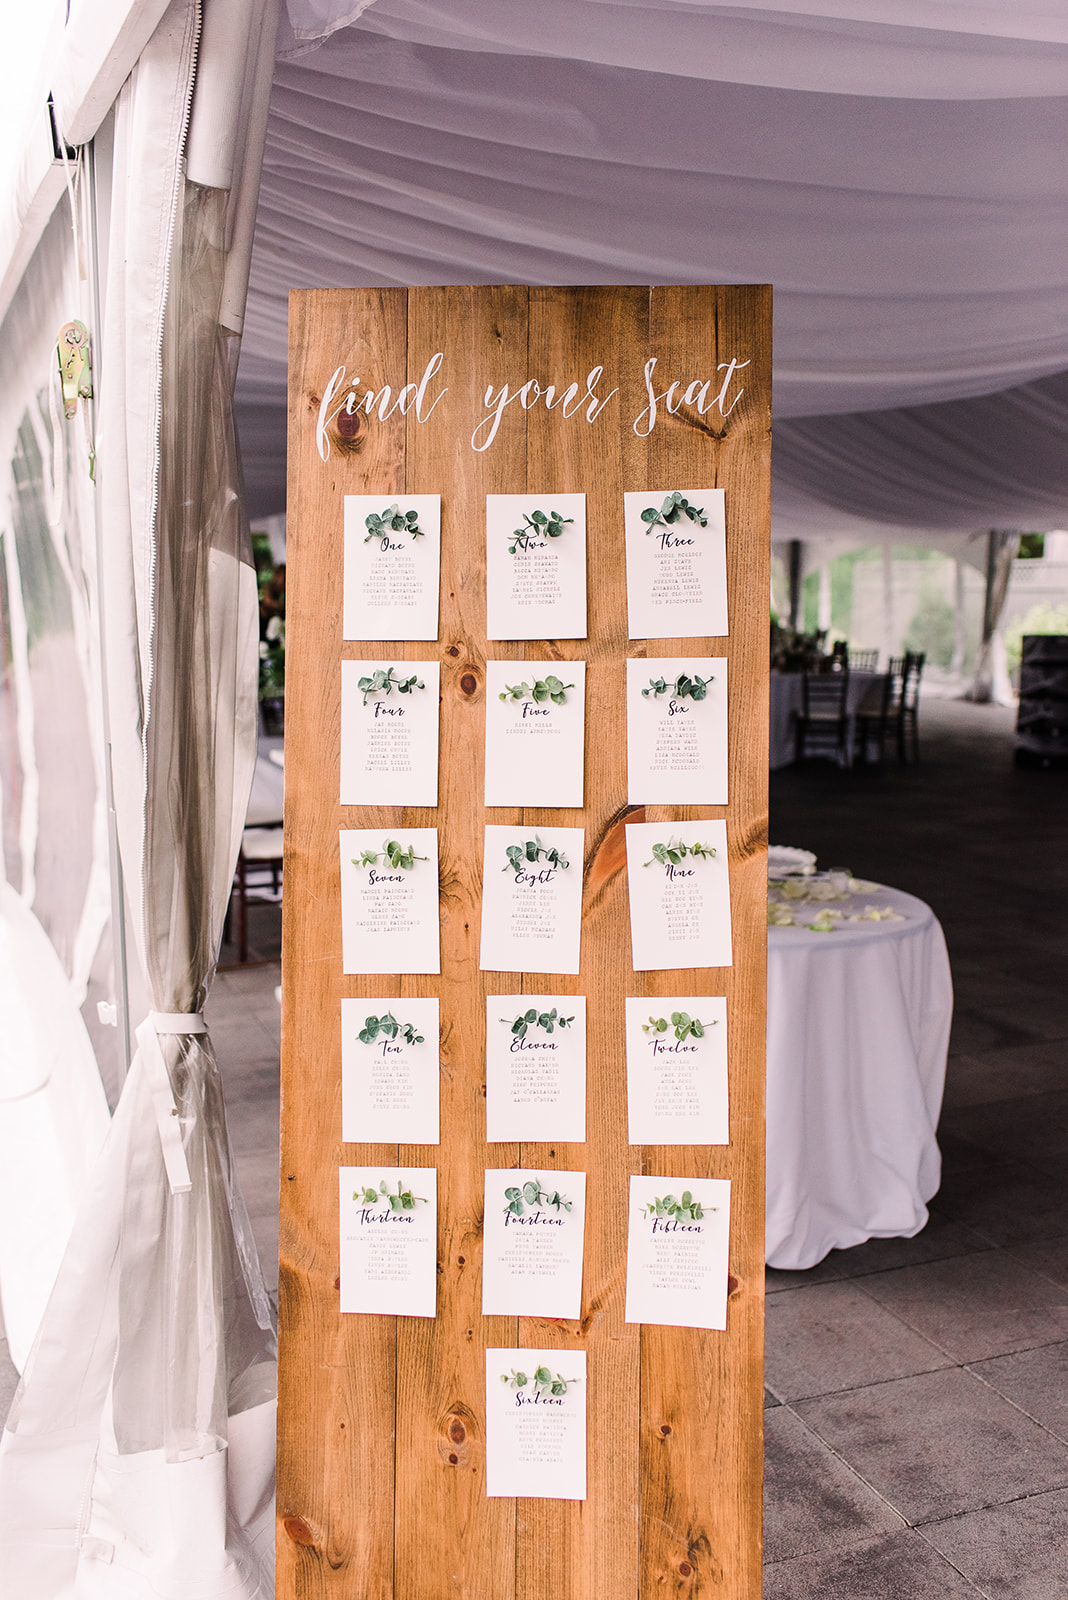 Wooden Seating Chart $50